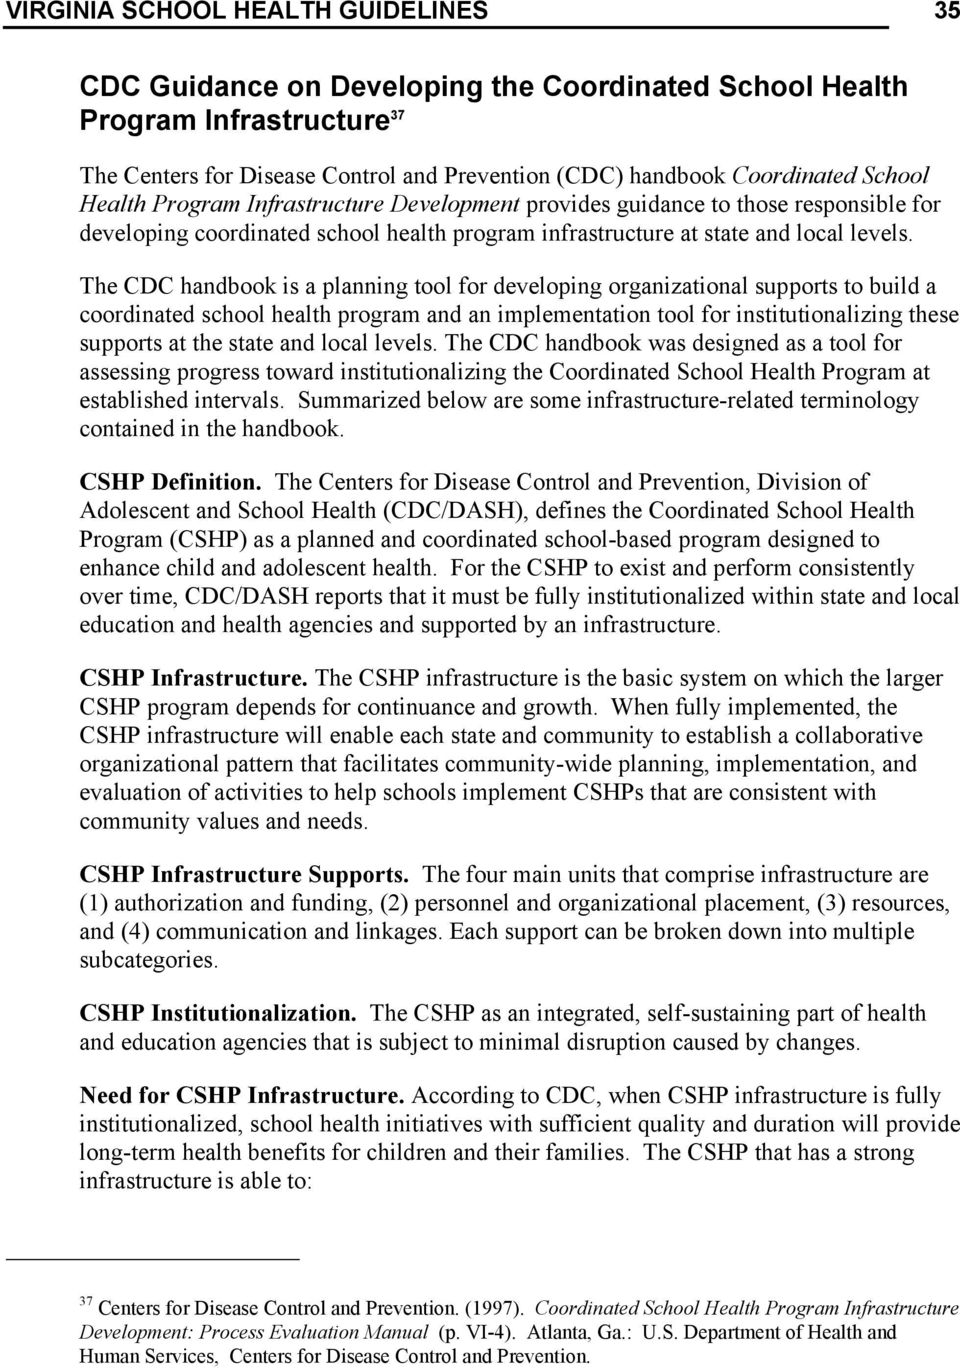 The CDC handbook is a planning tool for developing organizational supports to build a coordinated school health program and an implementation tool for institutionalizing these supports at the state